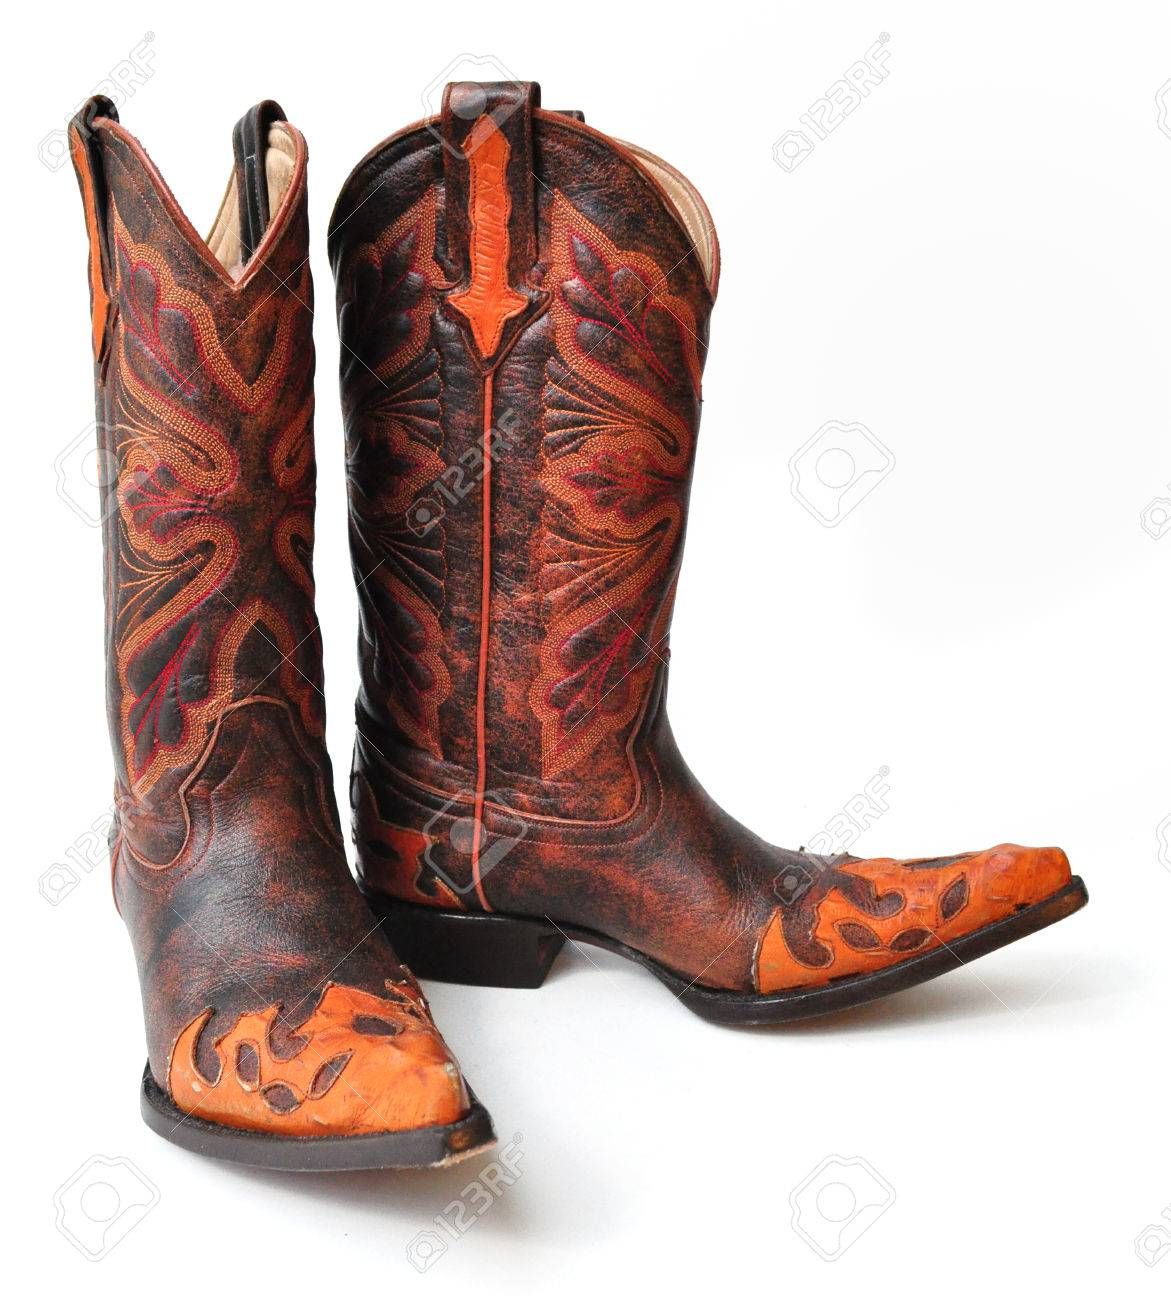 Leather Cowboy Boots On White Background Stock Photo, Picture And ...